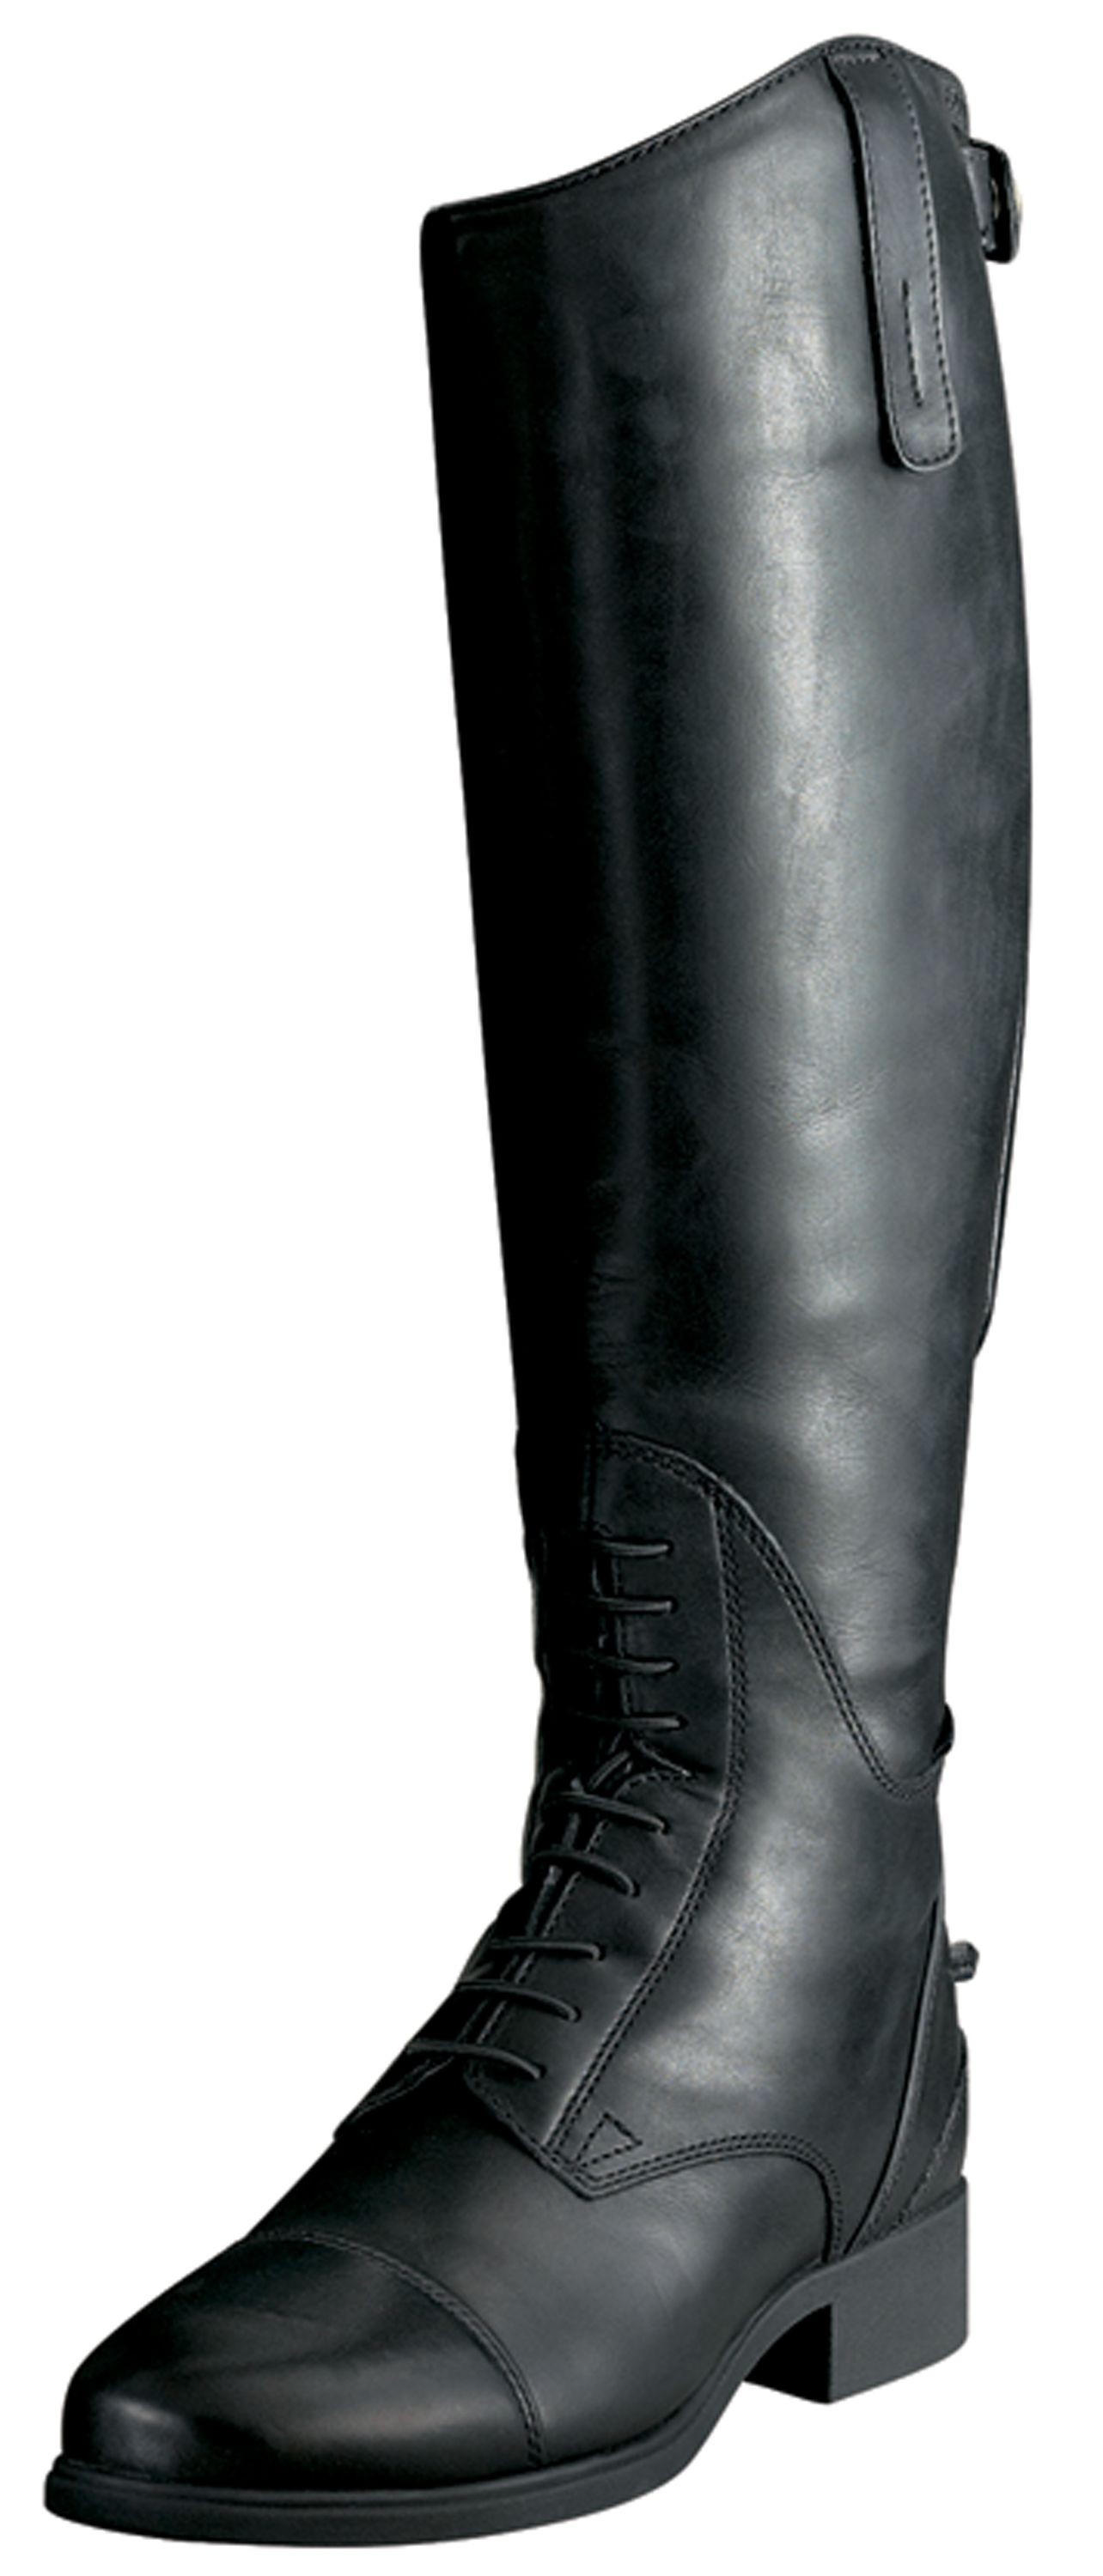 Ariat Woman's Bromont Tall H2O Insulated